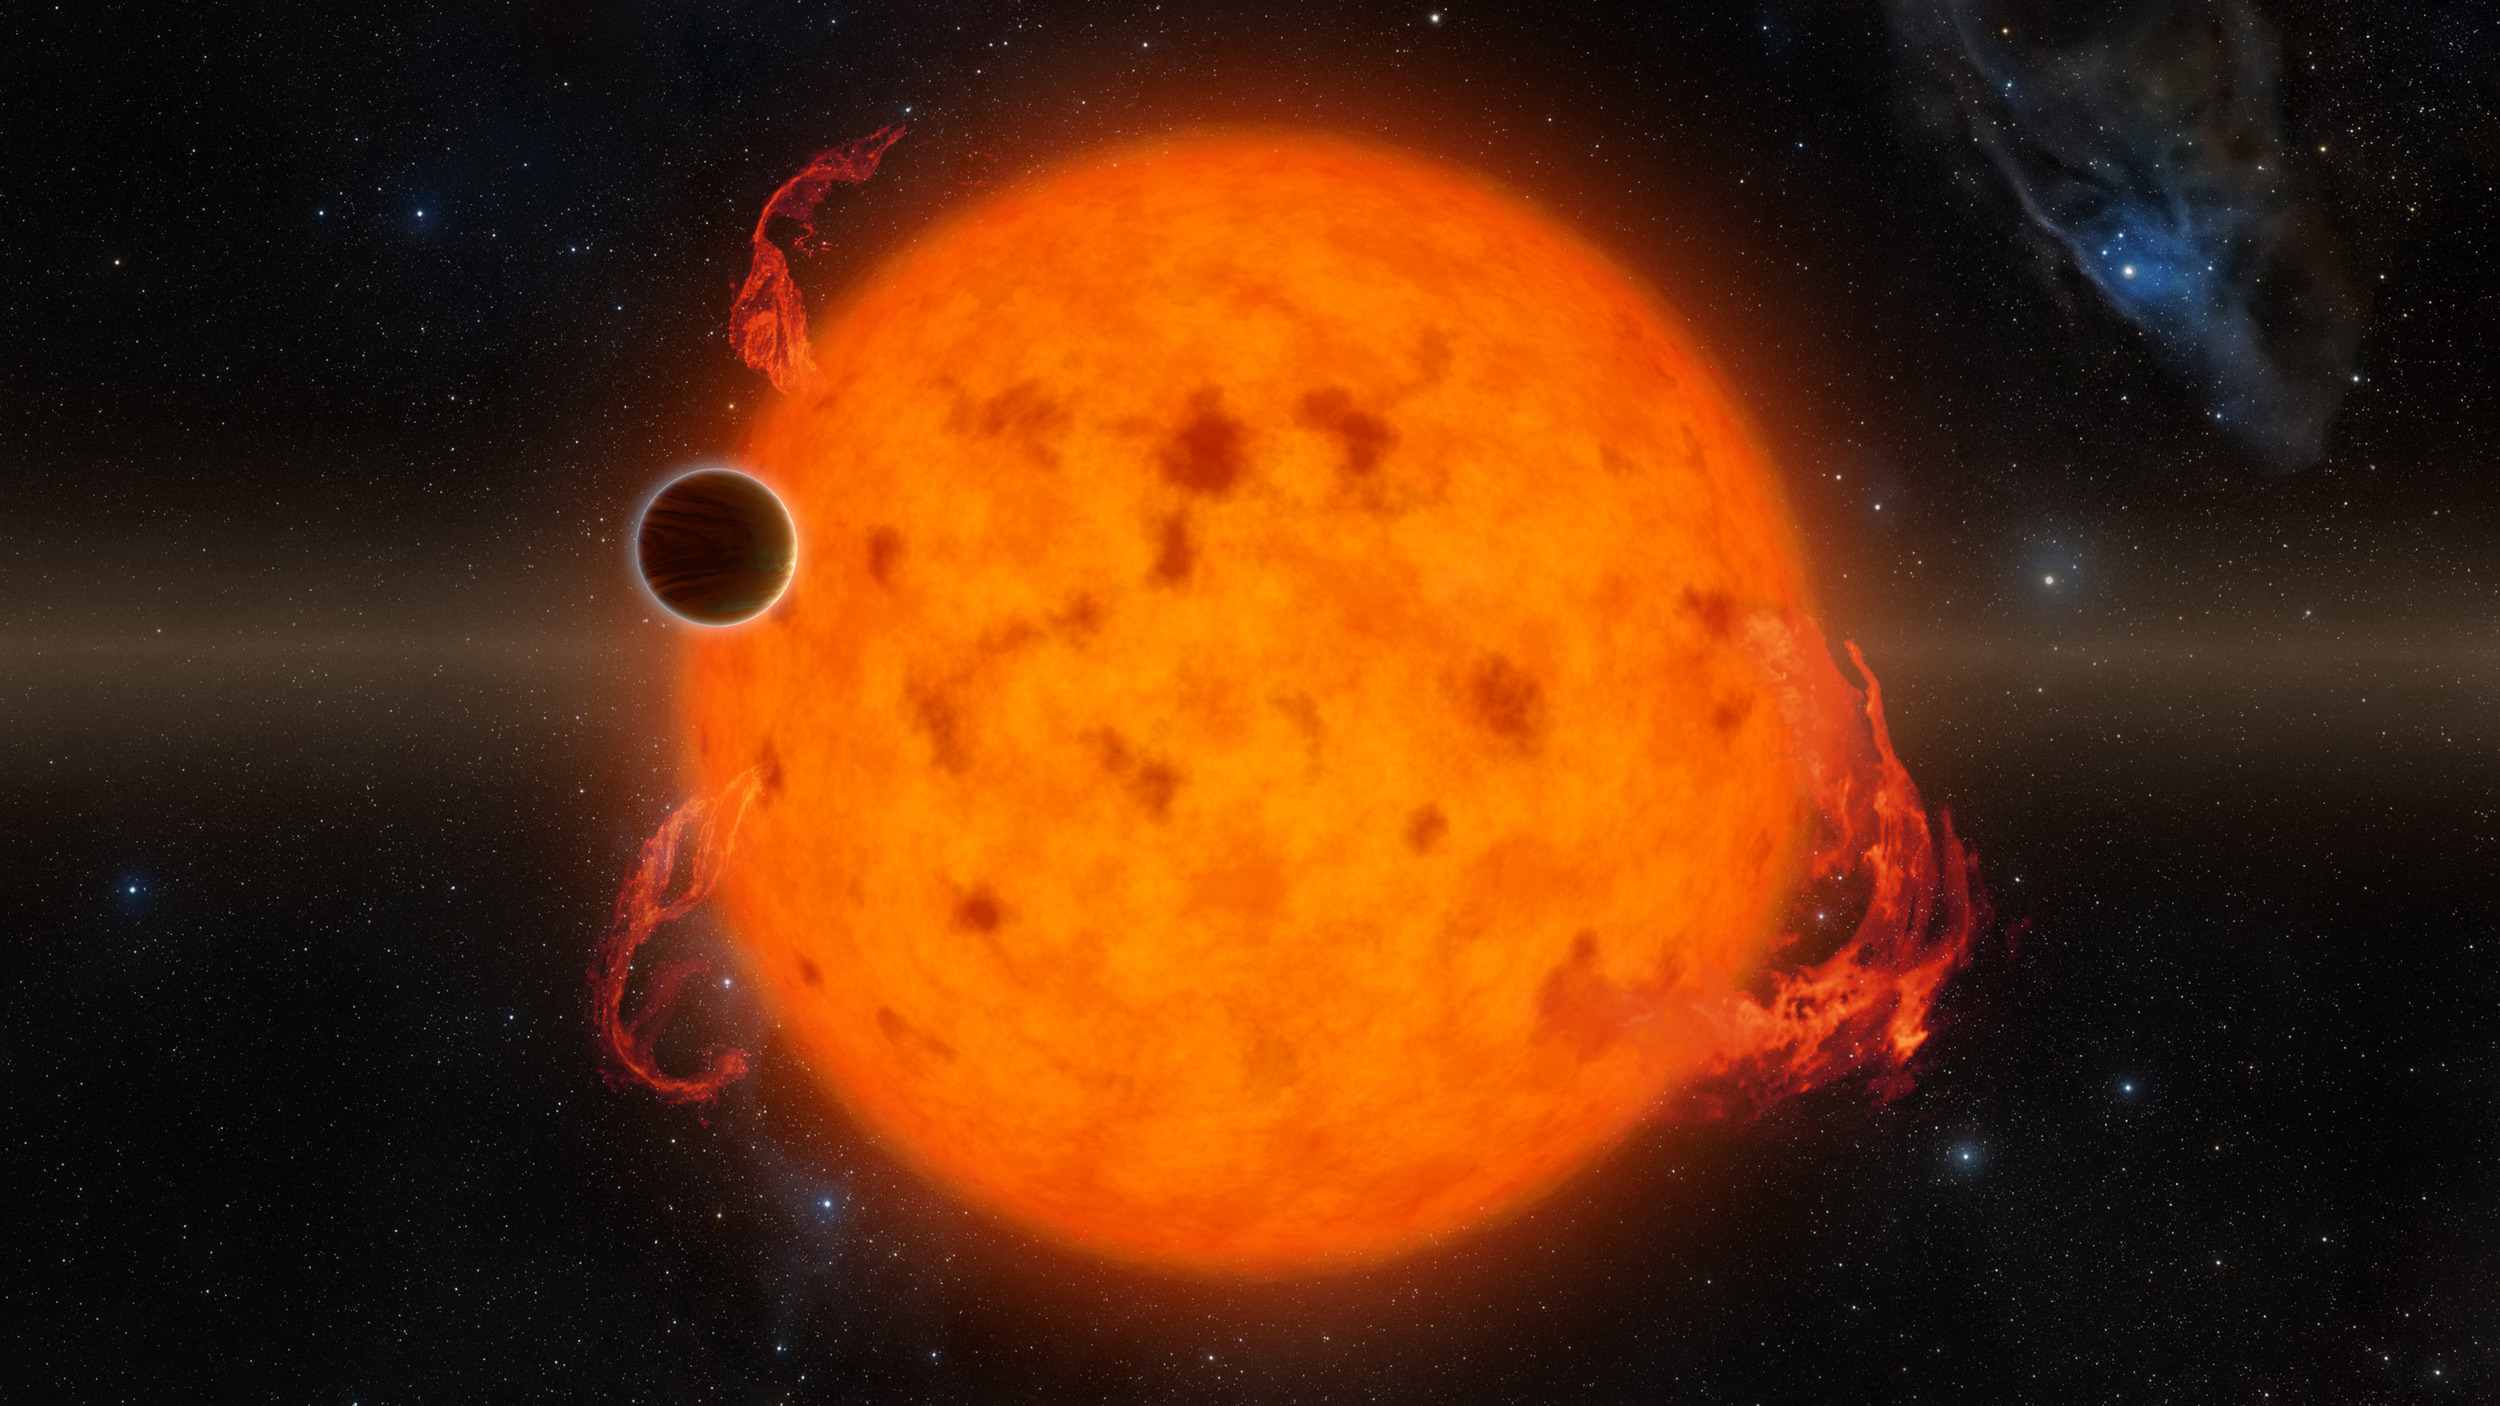 K2-33b, shown in this illustration, is one of the youngest exoplanets detected to date. It makes a complete orbit around its star in about five days. -  Credits: NASA/JPL-Caltech